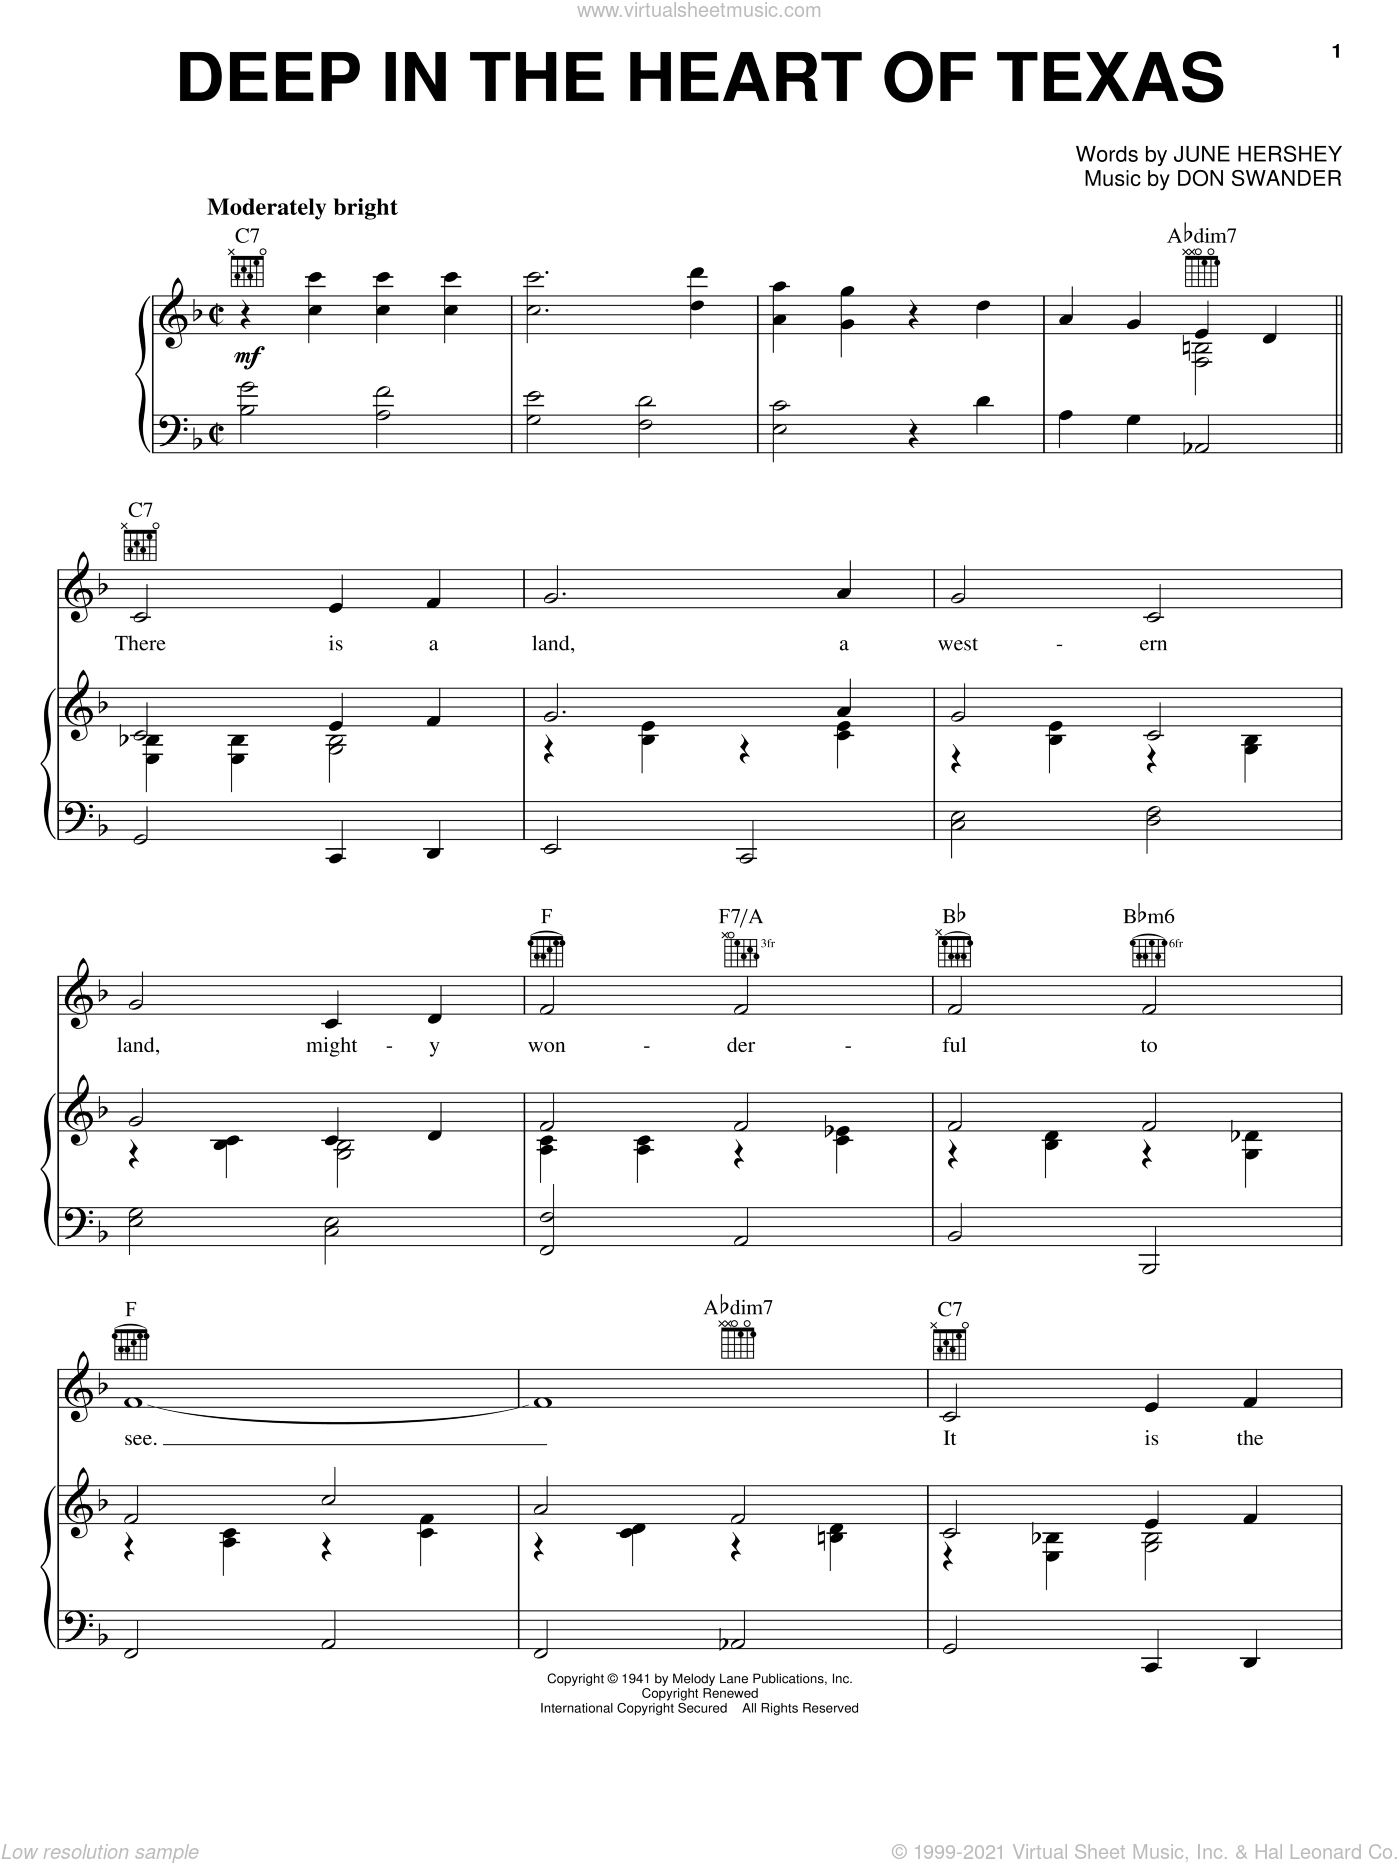 Deep In The Heart Of Texas sheet music for voice, piano or guitar by Alvino Rey & His Orchestra, Don Swander and June Hershey, intermediate